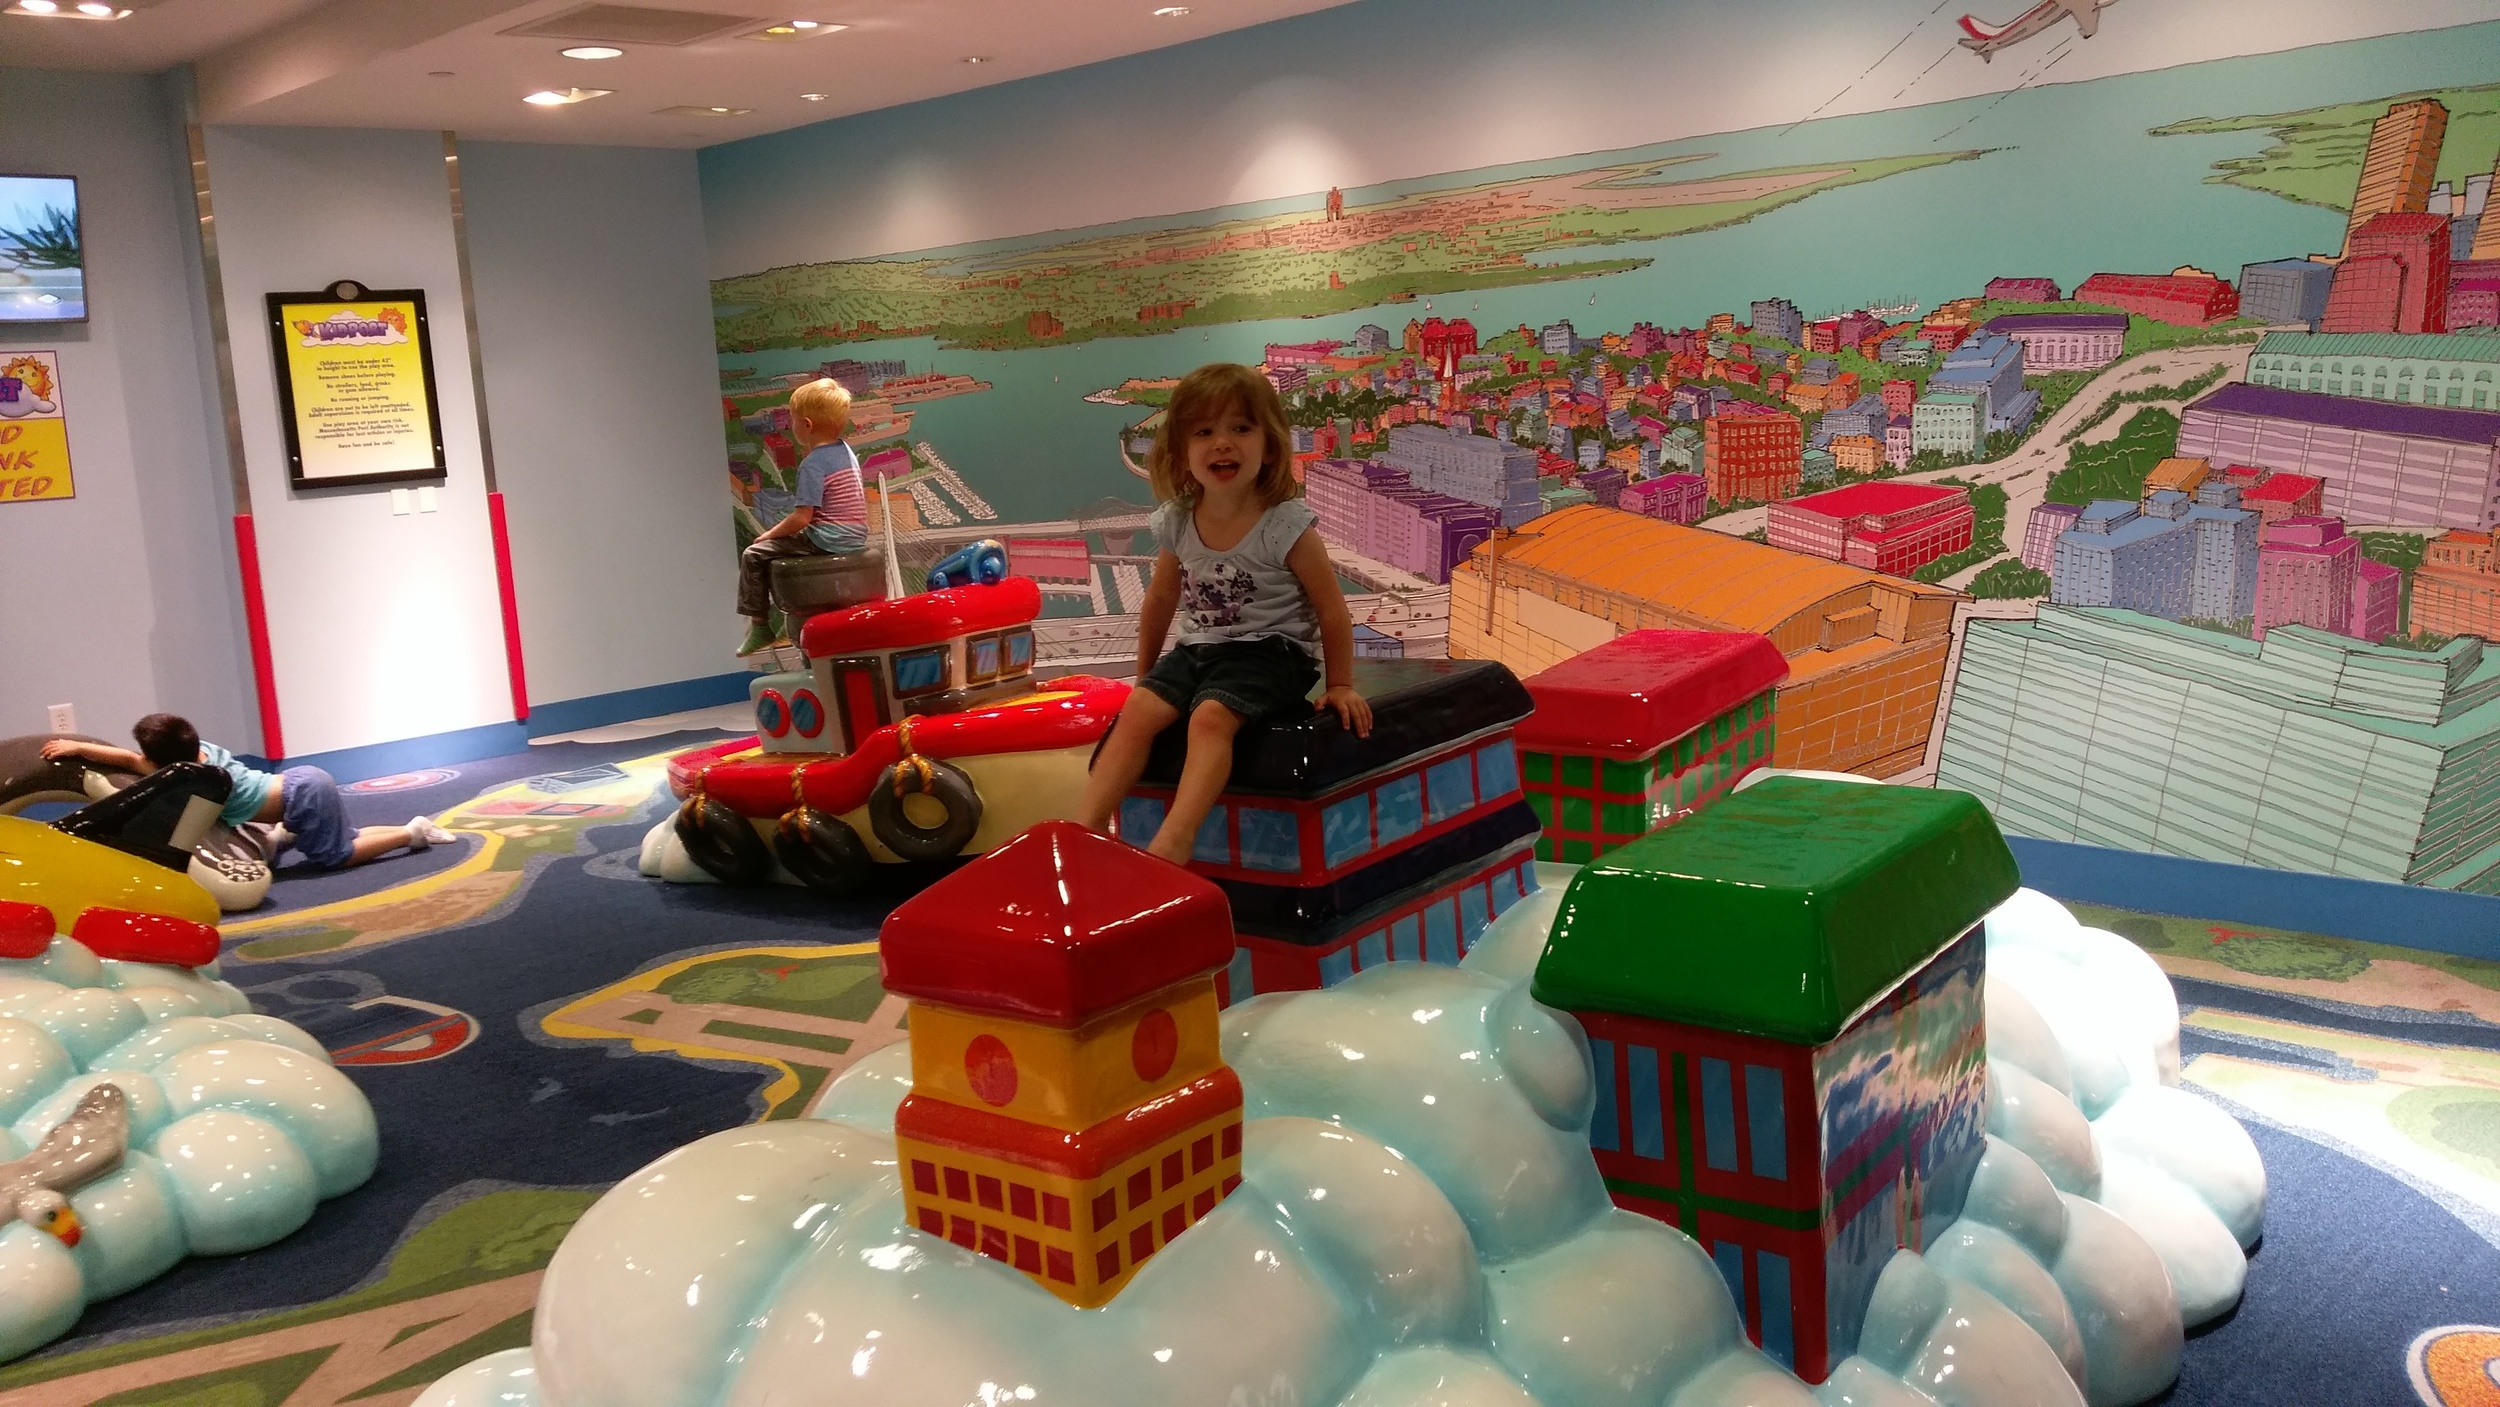 I'm Queen of the Airport Playground